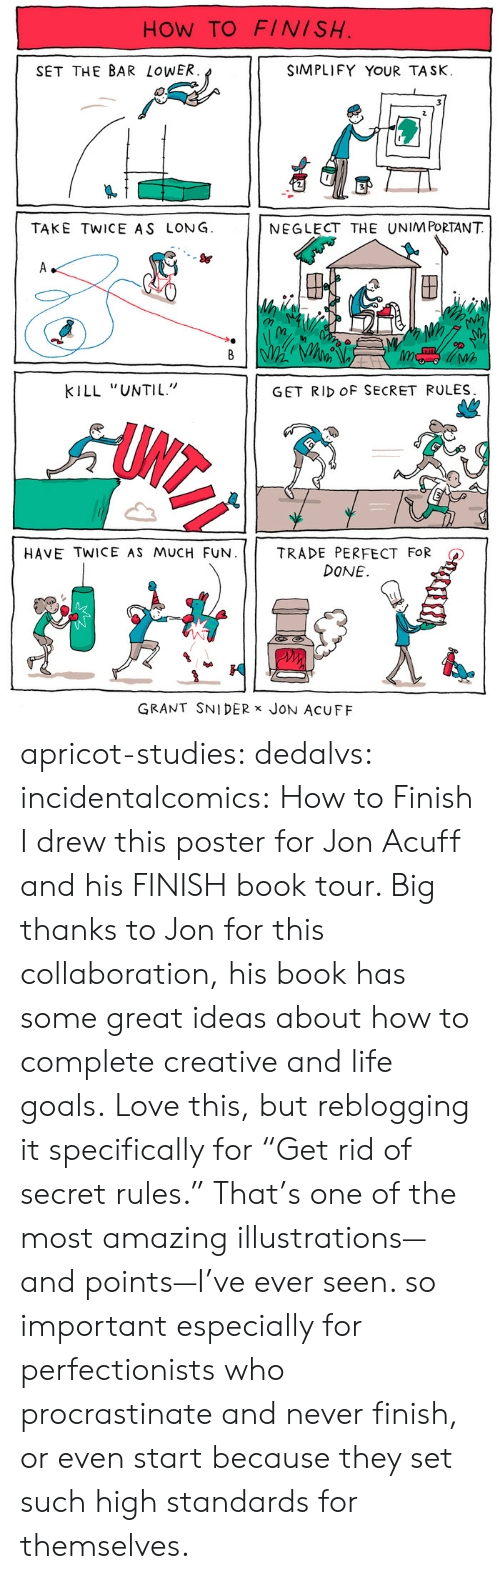 """I Drew This: HOW TO FINISH  SET THE BAR LoWER  SIMPLIFY YOUR TASK.  TAKE TWICE AS LONG  NEGLECT THE UNIM PORTANT  S&  (n  Wh  KILL """"UNTIL""""  GET RID OF SECRET RULES  HAVE TWICE AS MUCH FUN. 